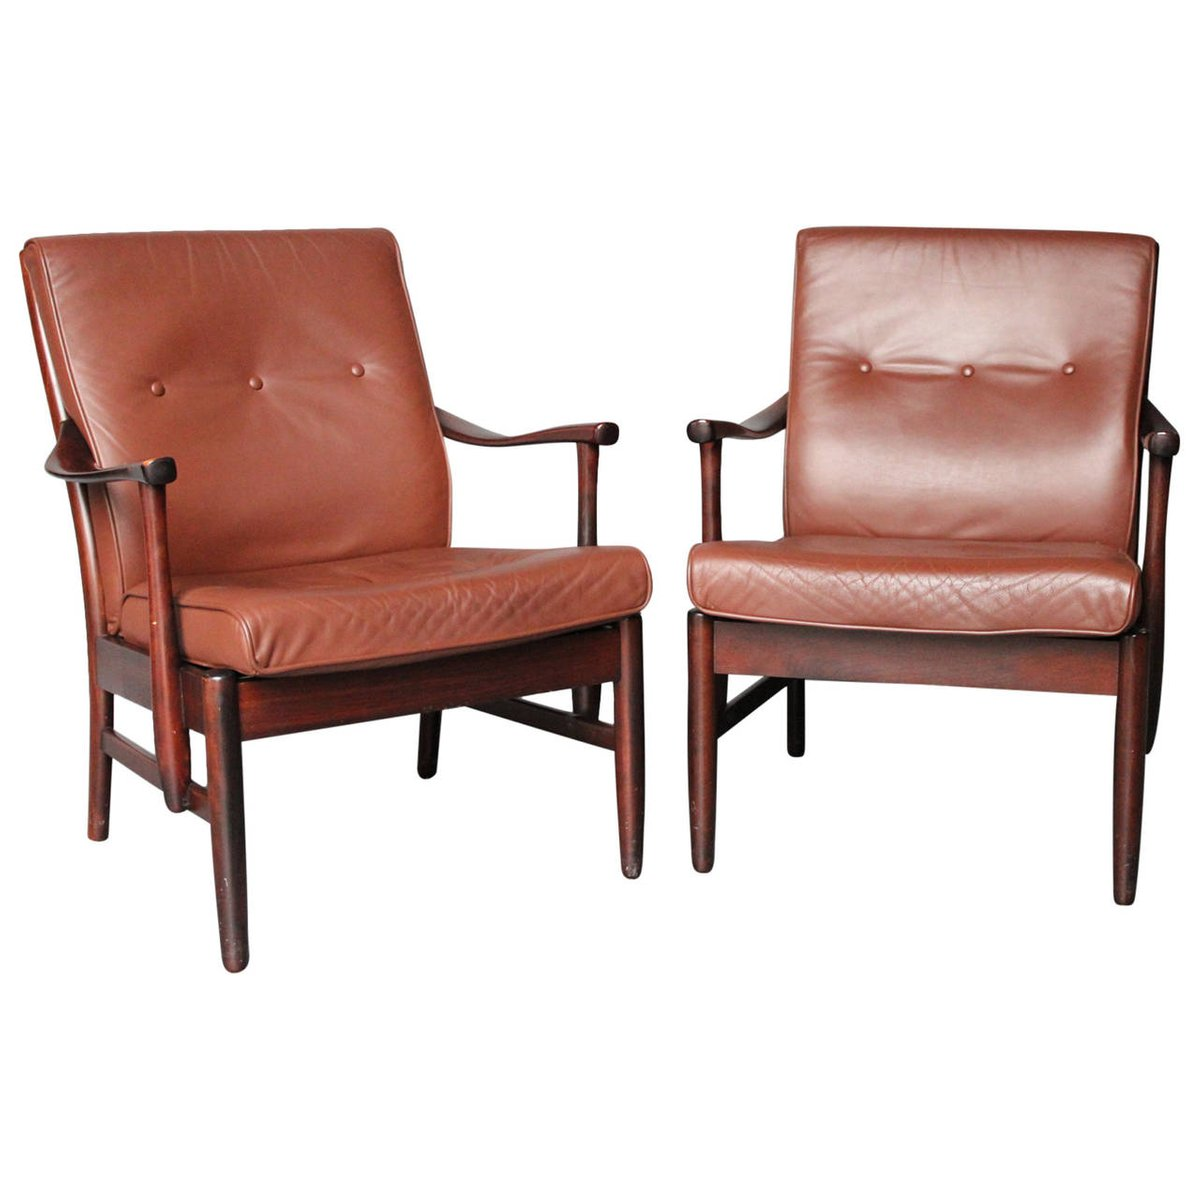 Polished Mahogany Armchairs 1960s Set Of 2 For Sale At